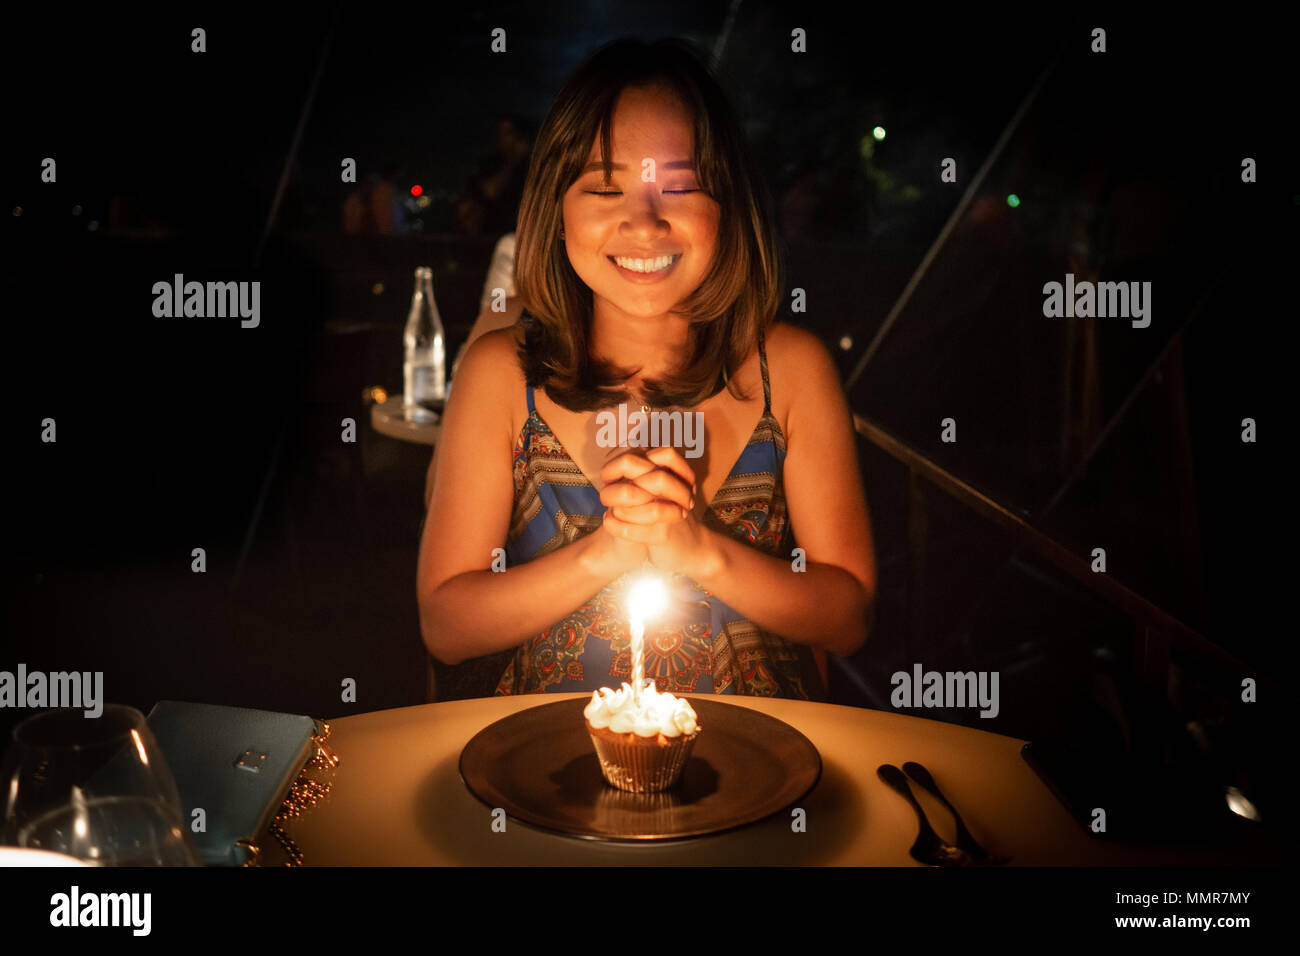 Young woman celebrating her birthday and making a wish at a dinner in a nice restaurant - Stock Image